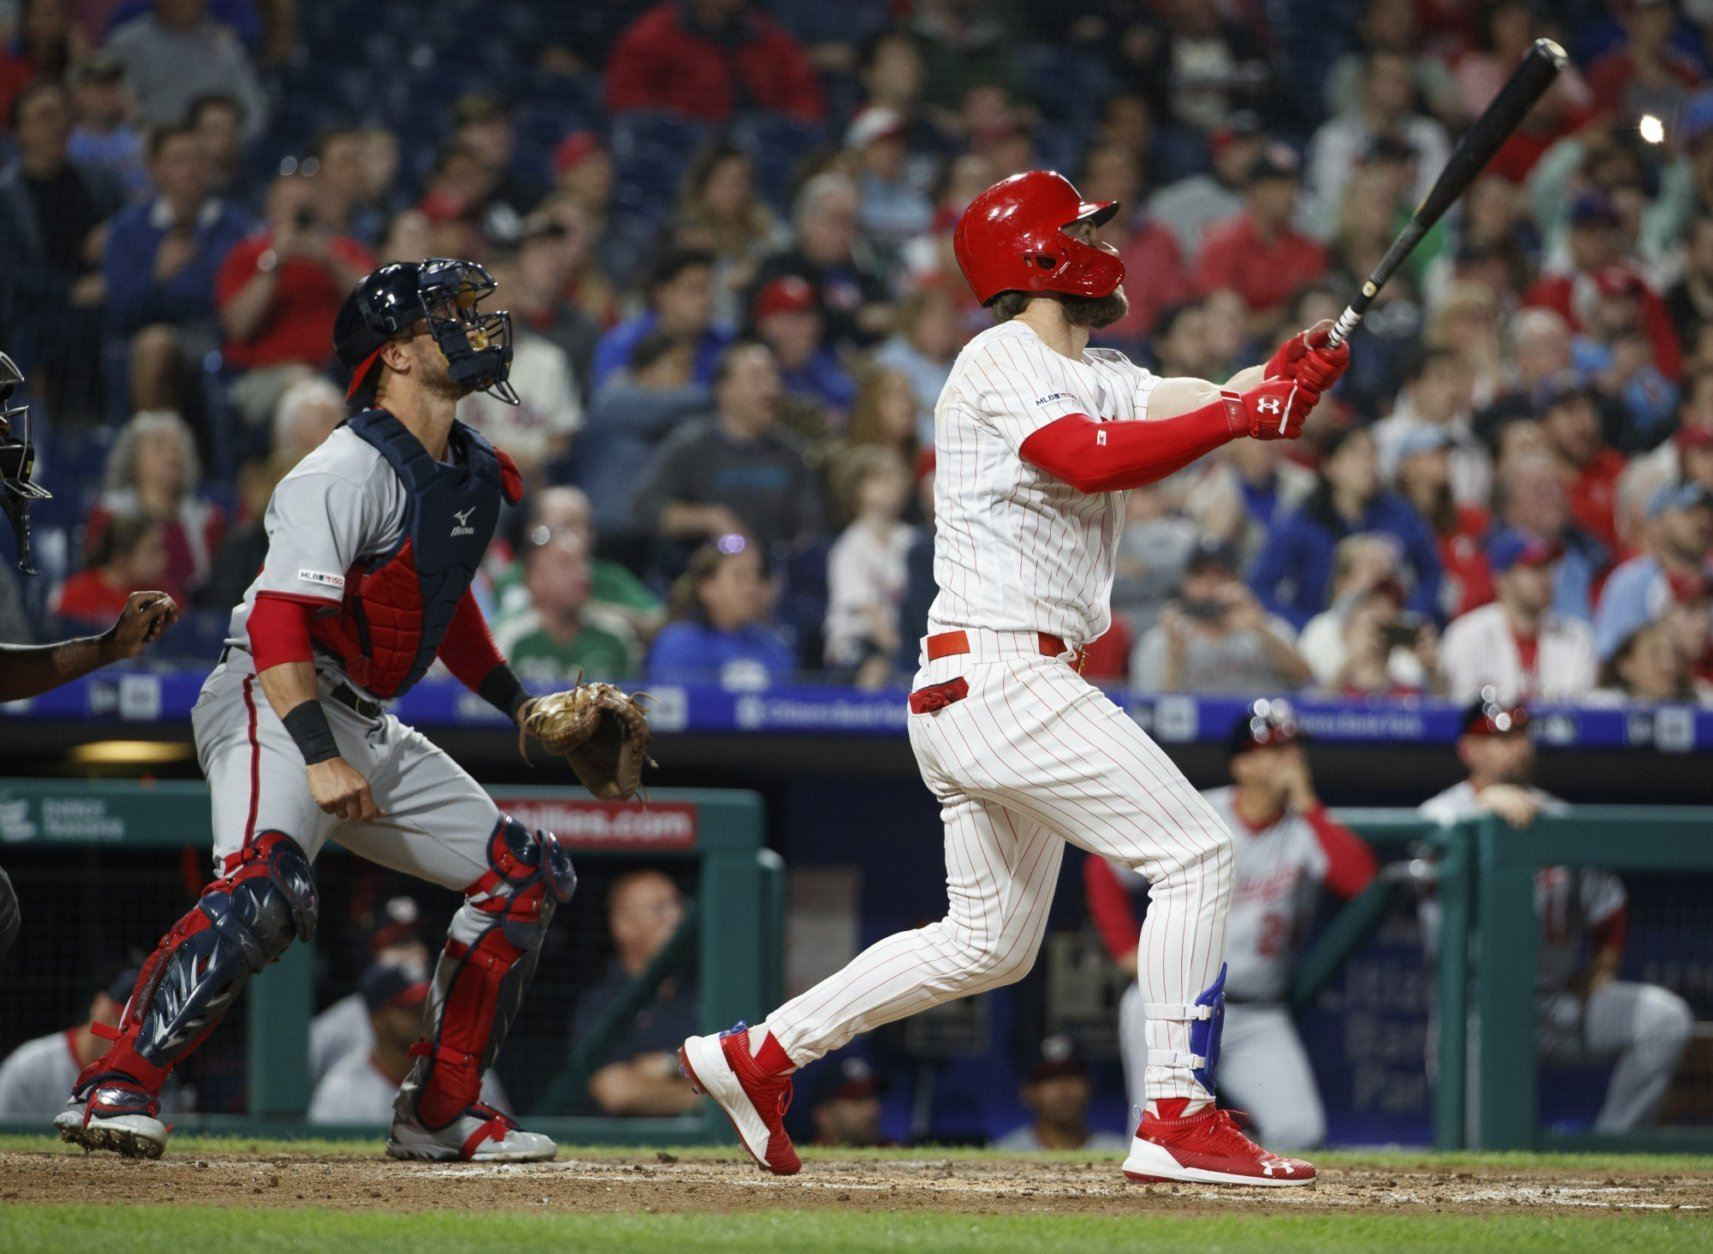 Philadelphia Phillies' Bryce Harper, right, and Washington Nationals catcher Yan Gomes watch his three-run home run during the third inning of a baseball game Tuesday, April 9, 2019, in Philadelphia. (AP Photo/Chris Szagola)